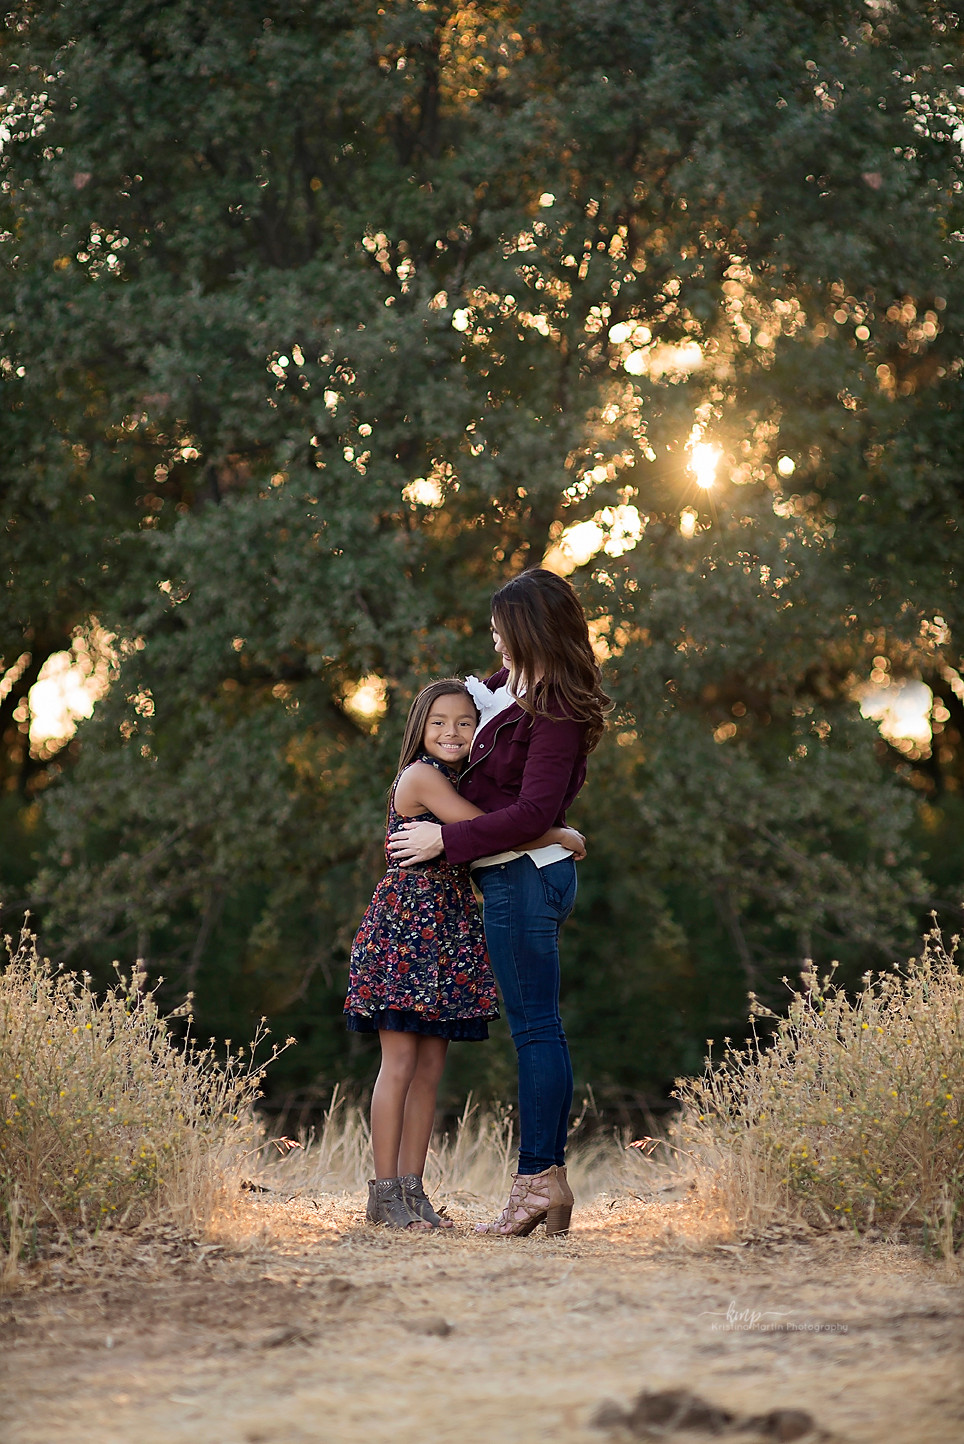 Portrait Session, Photo Session, Sacramento Photographer, Roseville Photographer, Lincoln Photographer, Best Portrait Photographer, Custom Photographer, Fine Art Photographer, Kristina Martin Photography, KMP, Family  Photography, Northern California Photographer, Wedding Photography, Best Sacramento Wedding Photographer, Maternity Photographer